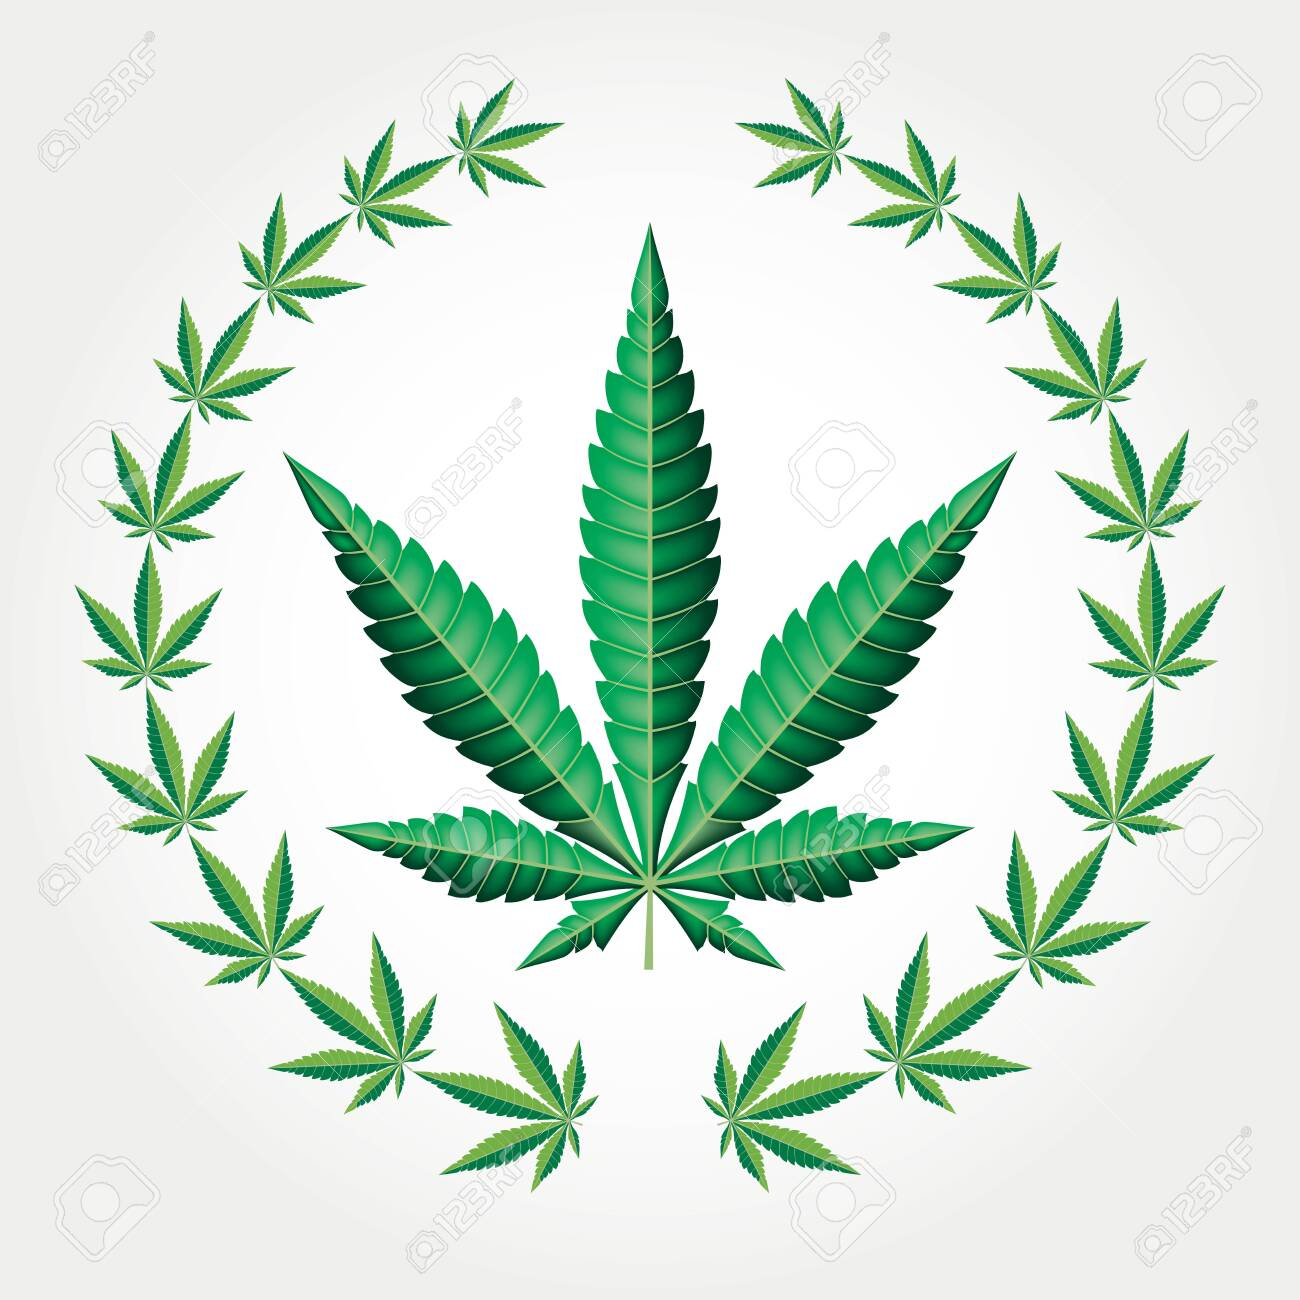 Wreath With Marijuana Leaves Vector Illustration Royalty Free Cliparts Vectors And Stock Illustration Image 129274289